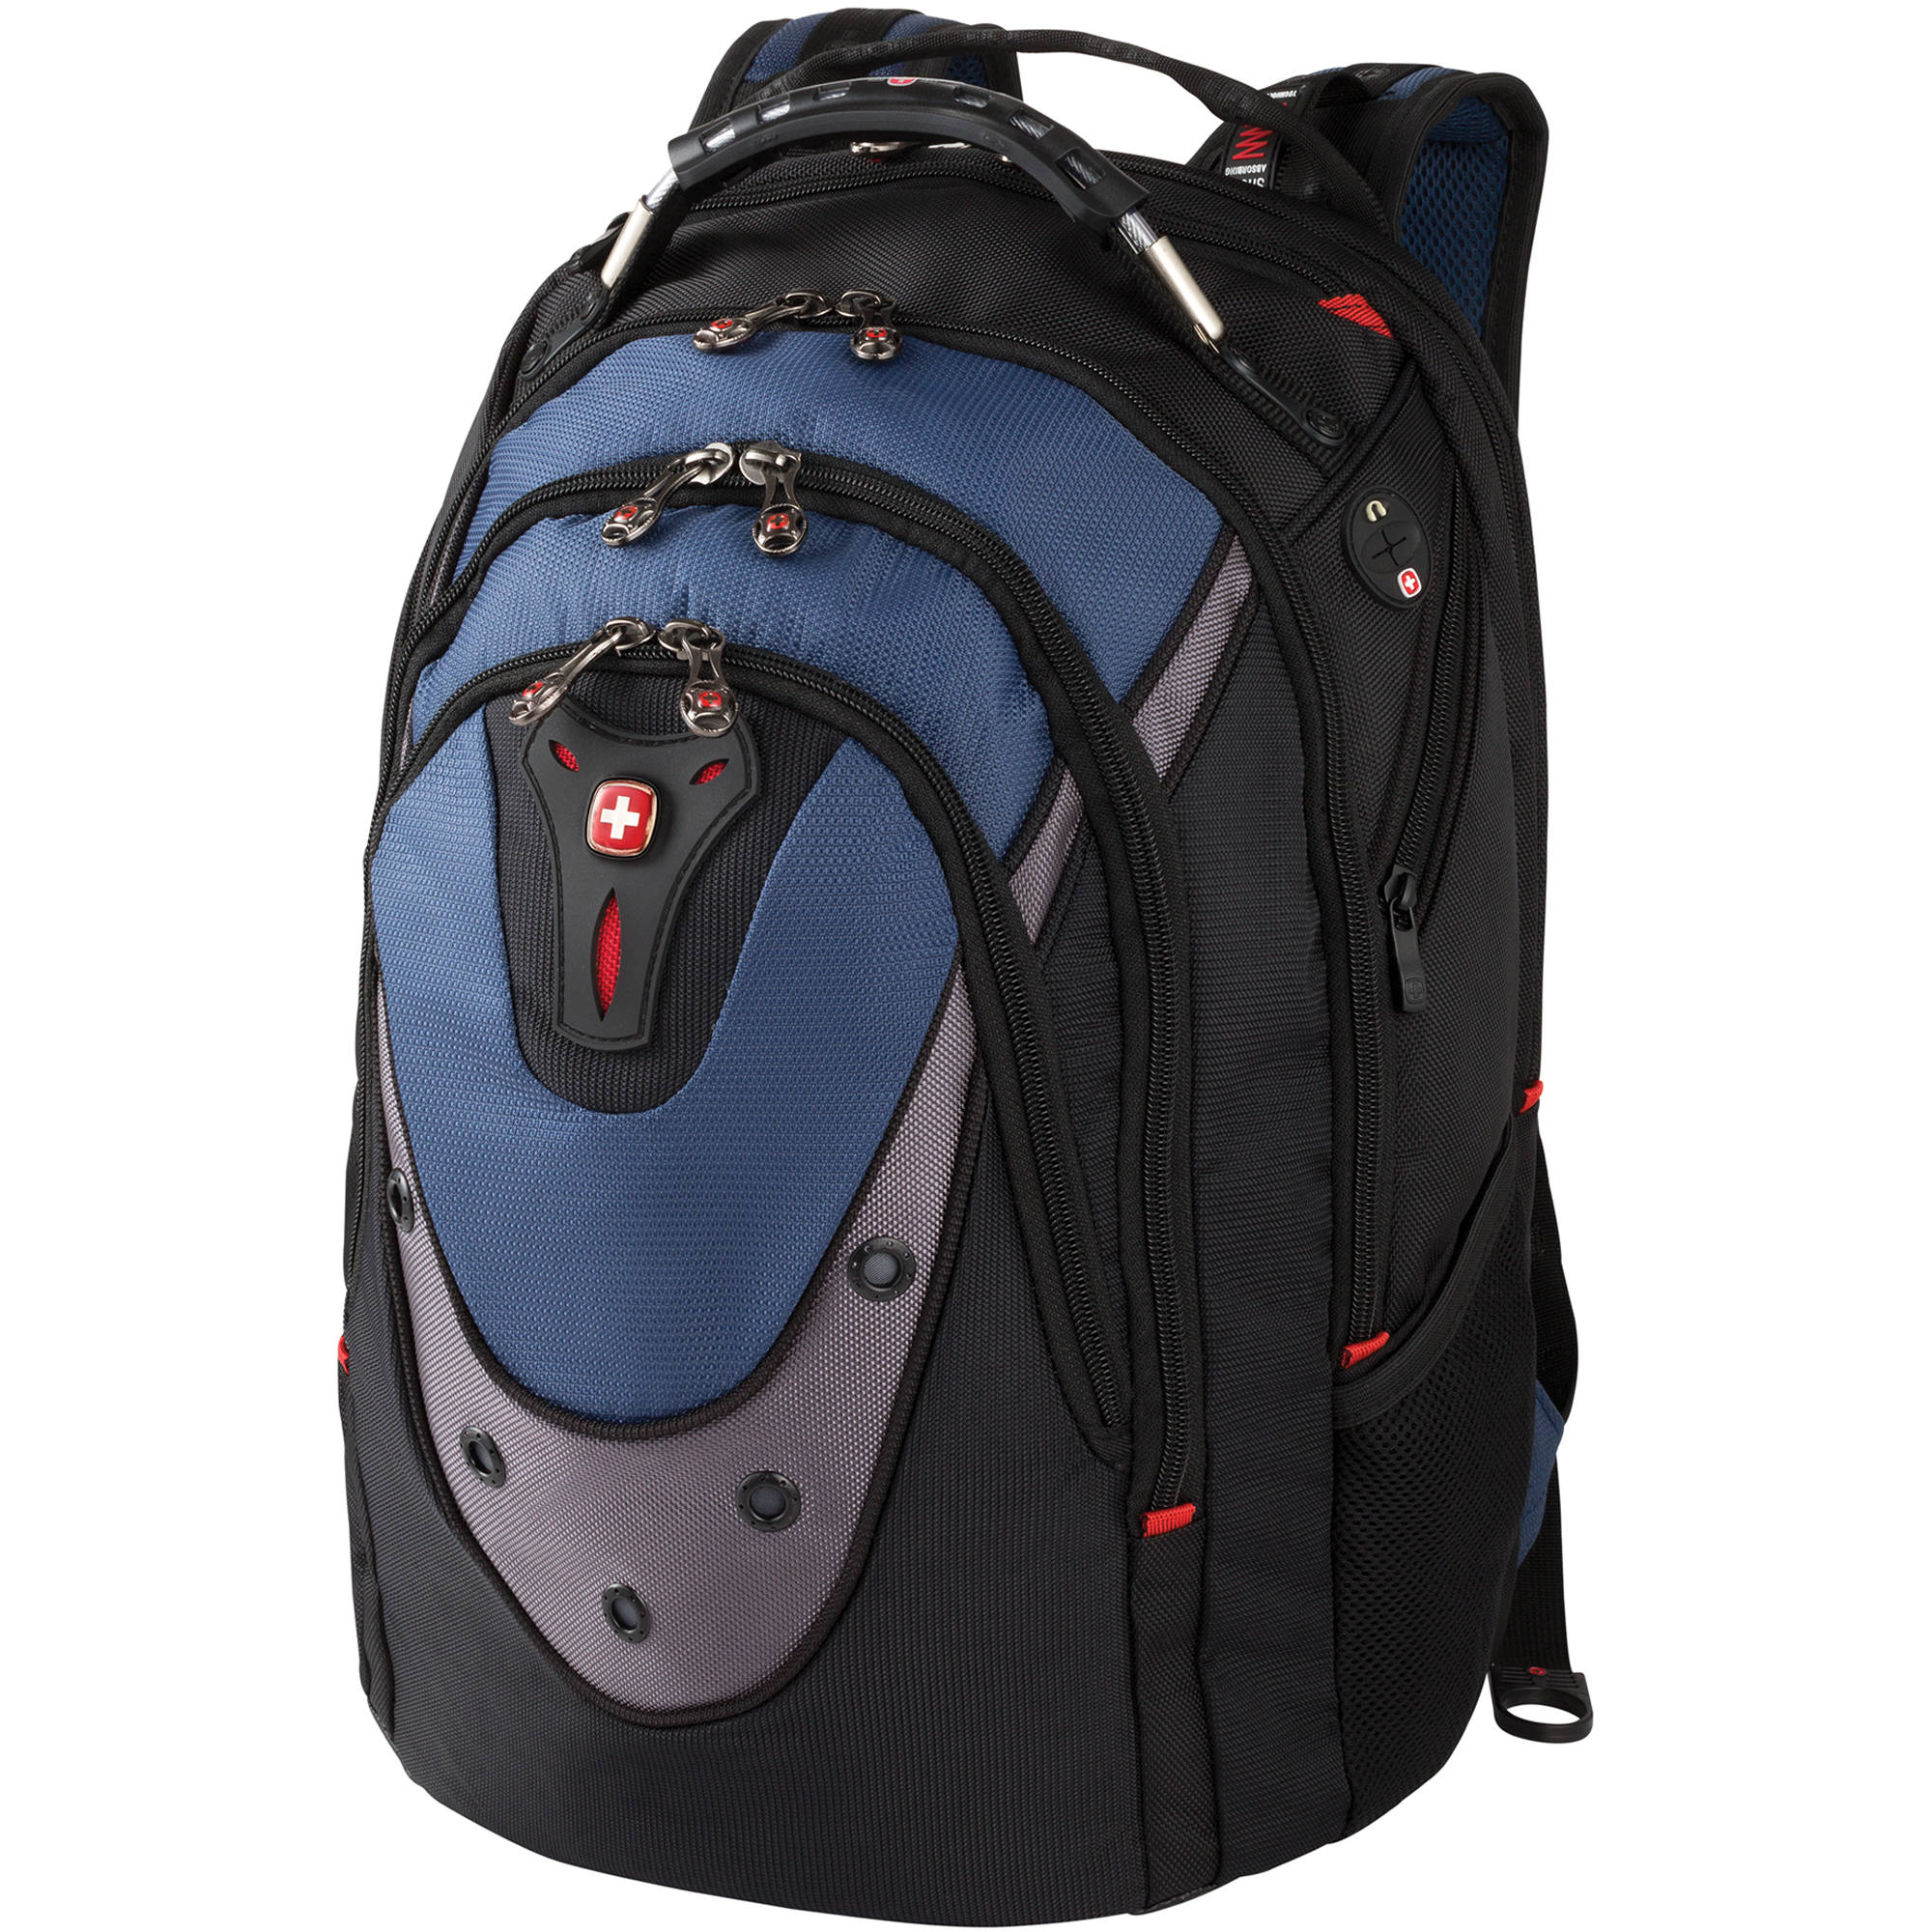 Swiss Gear Backpack Warranty j23NGdjG